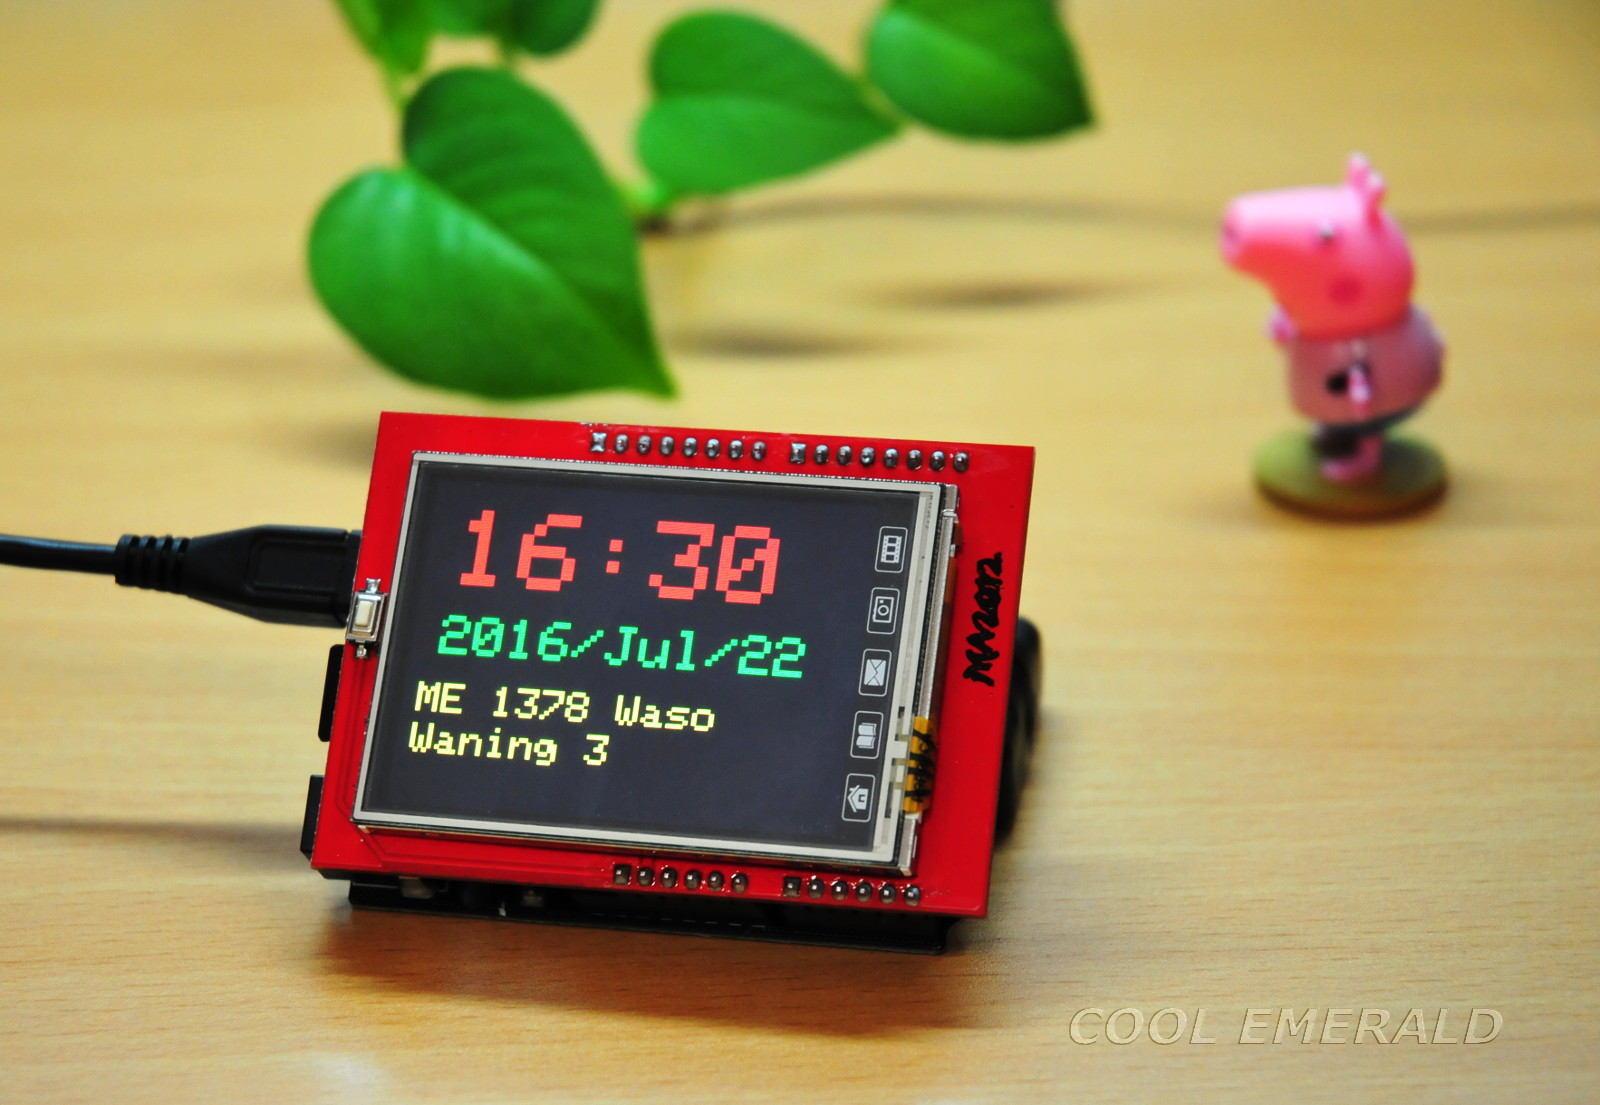 Cool Emerald: TFT LCD Touch Screen - ILI9341